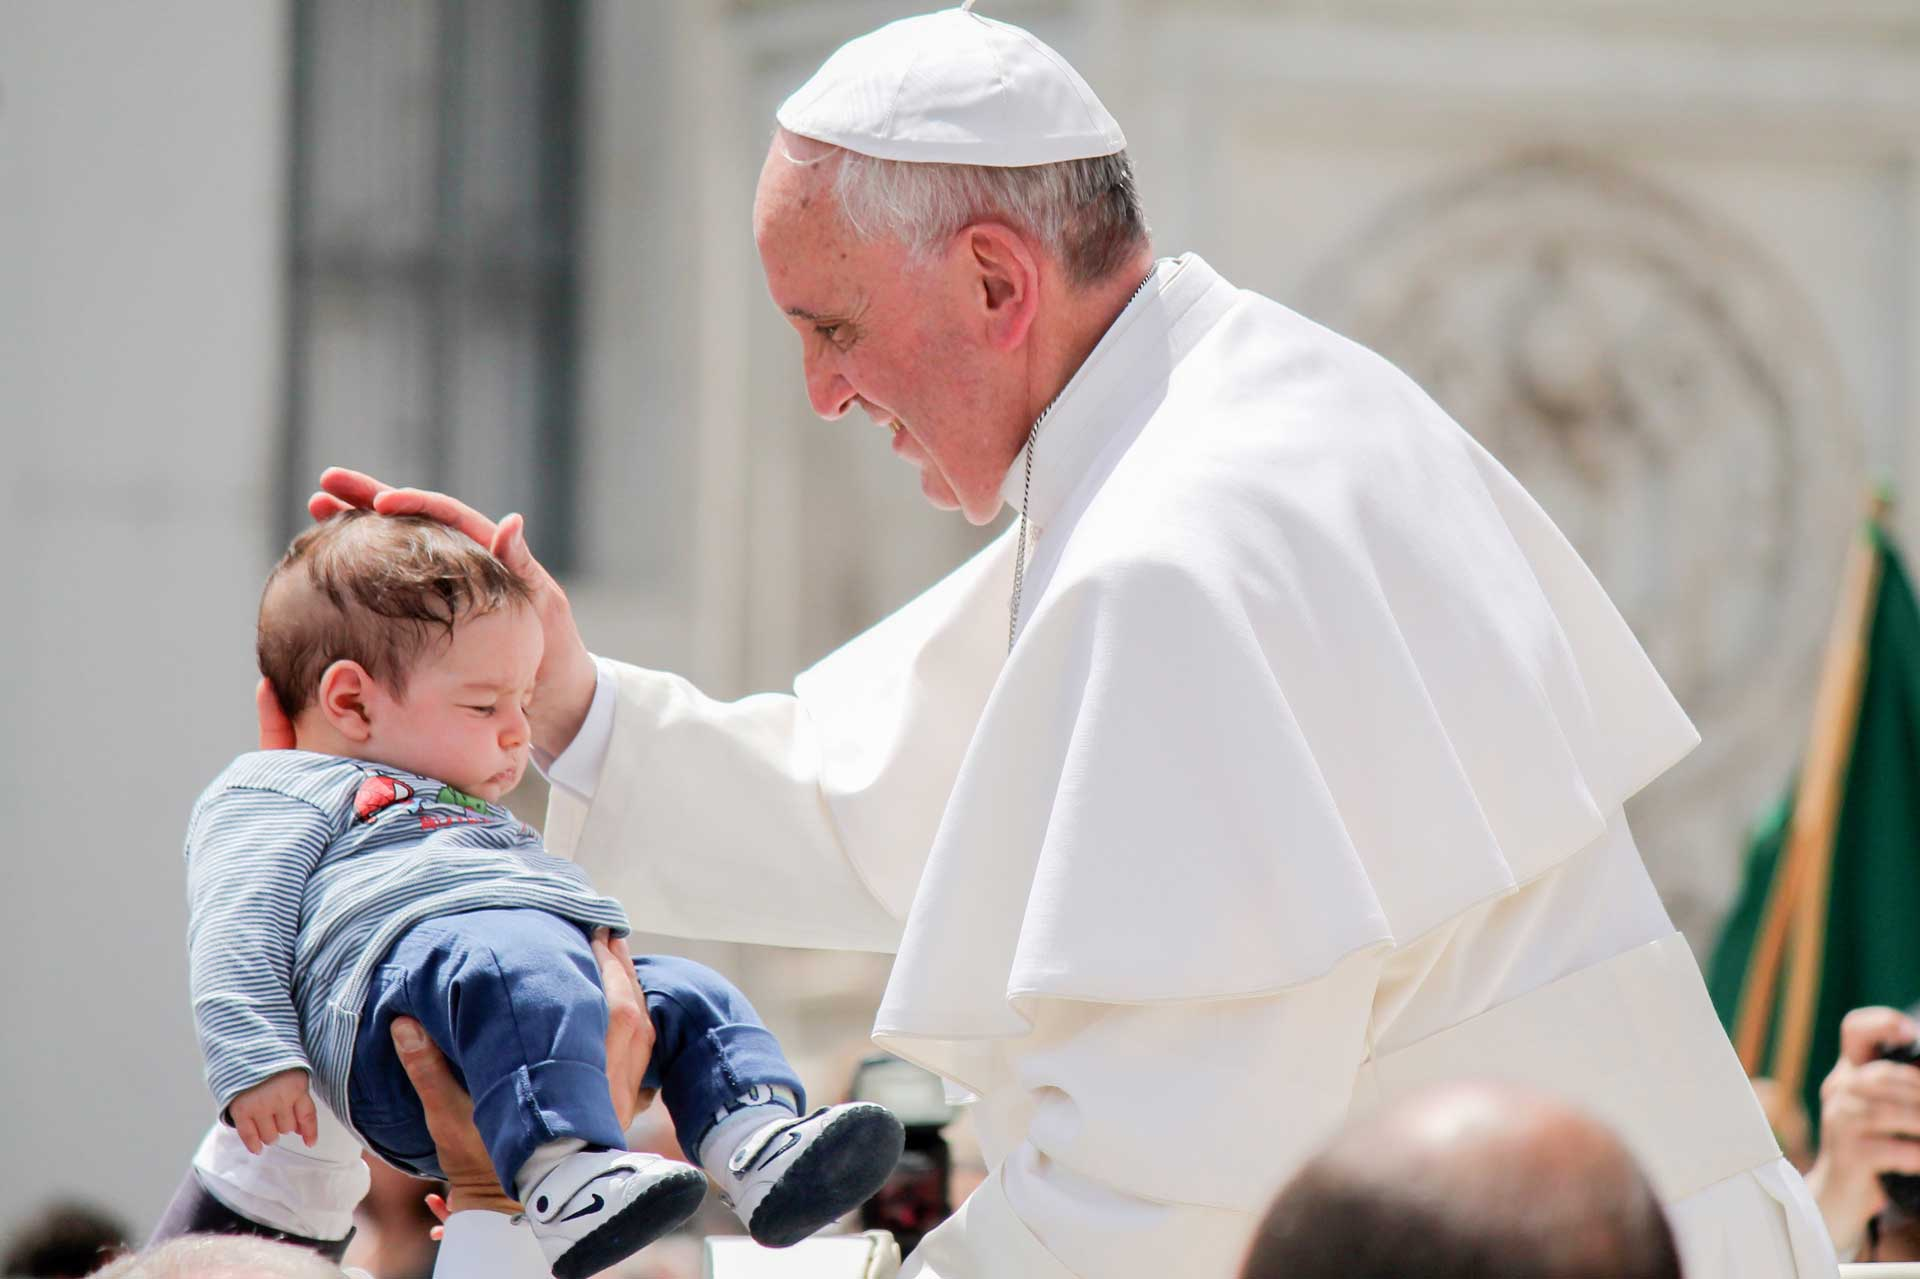 Pope blessing baby CNA Migrants and Refugees